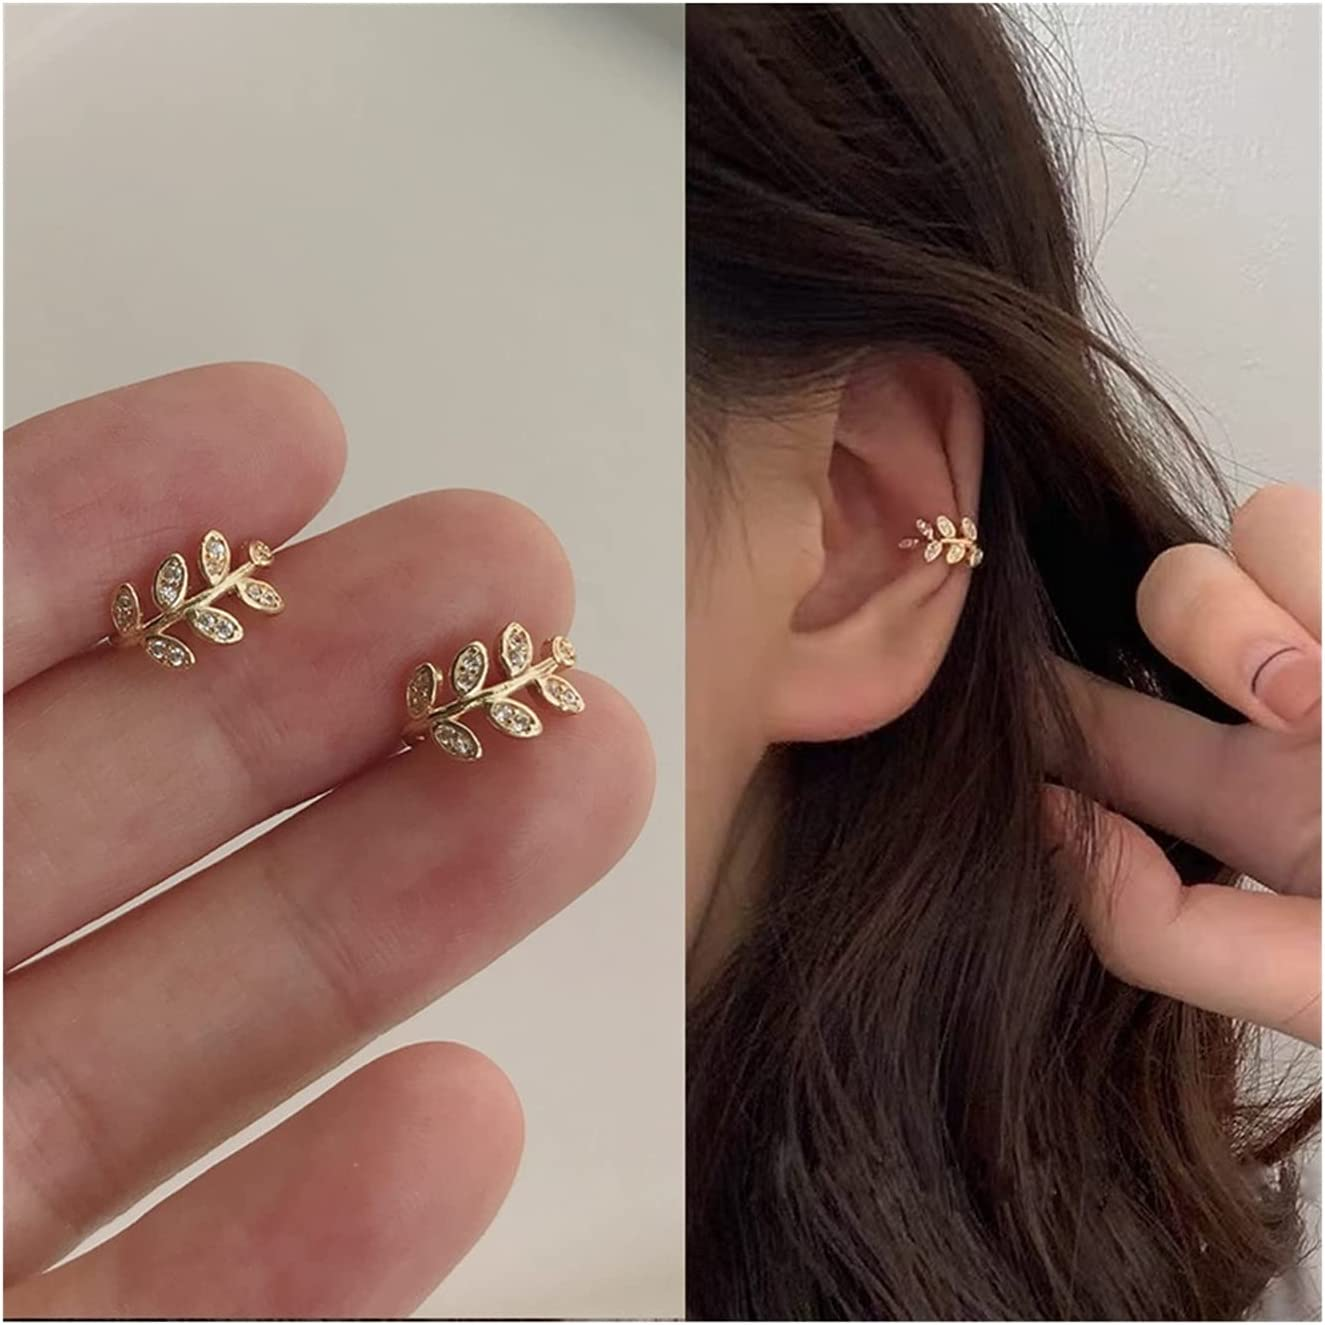 SYBLD Fashion Clip-on Earrings for Women Without Pierced Retro Crystal Earrings Jewelry Gifts (Metal Color : E014)